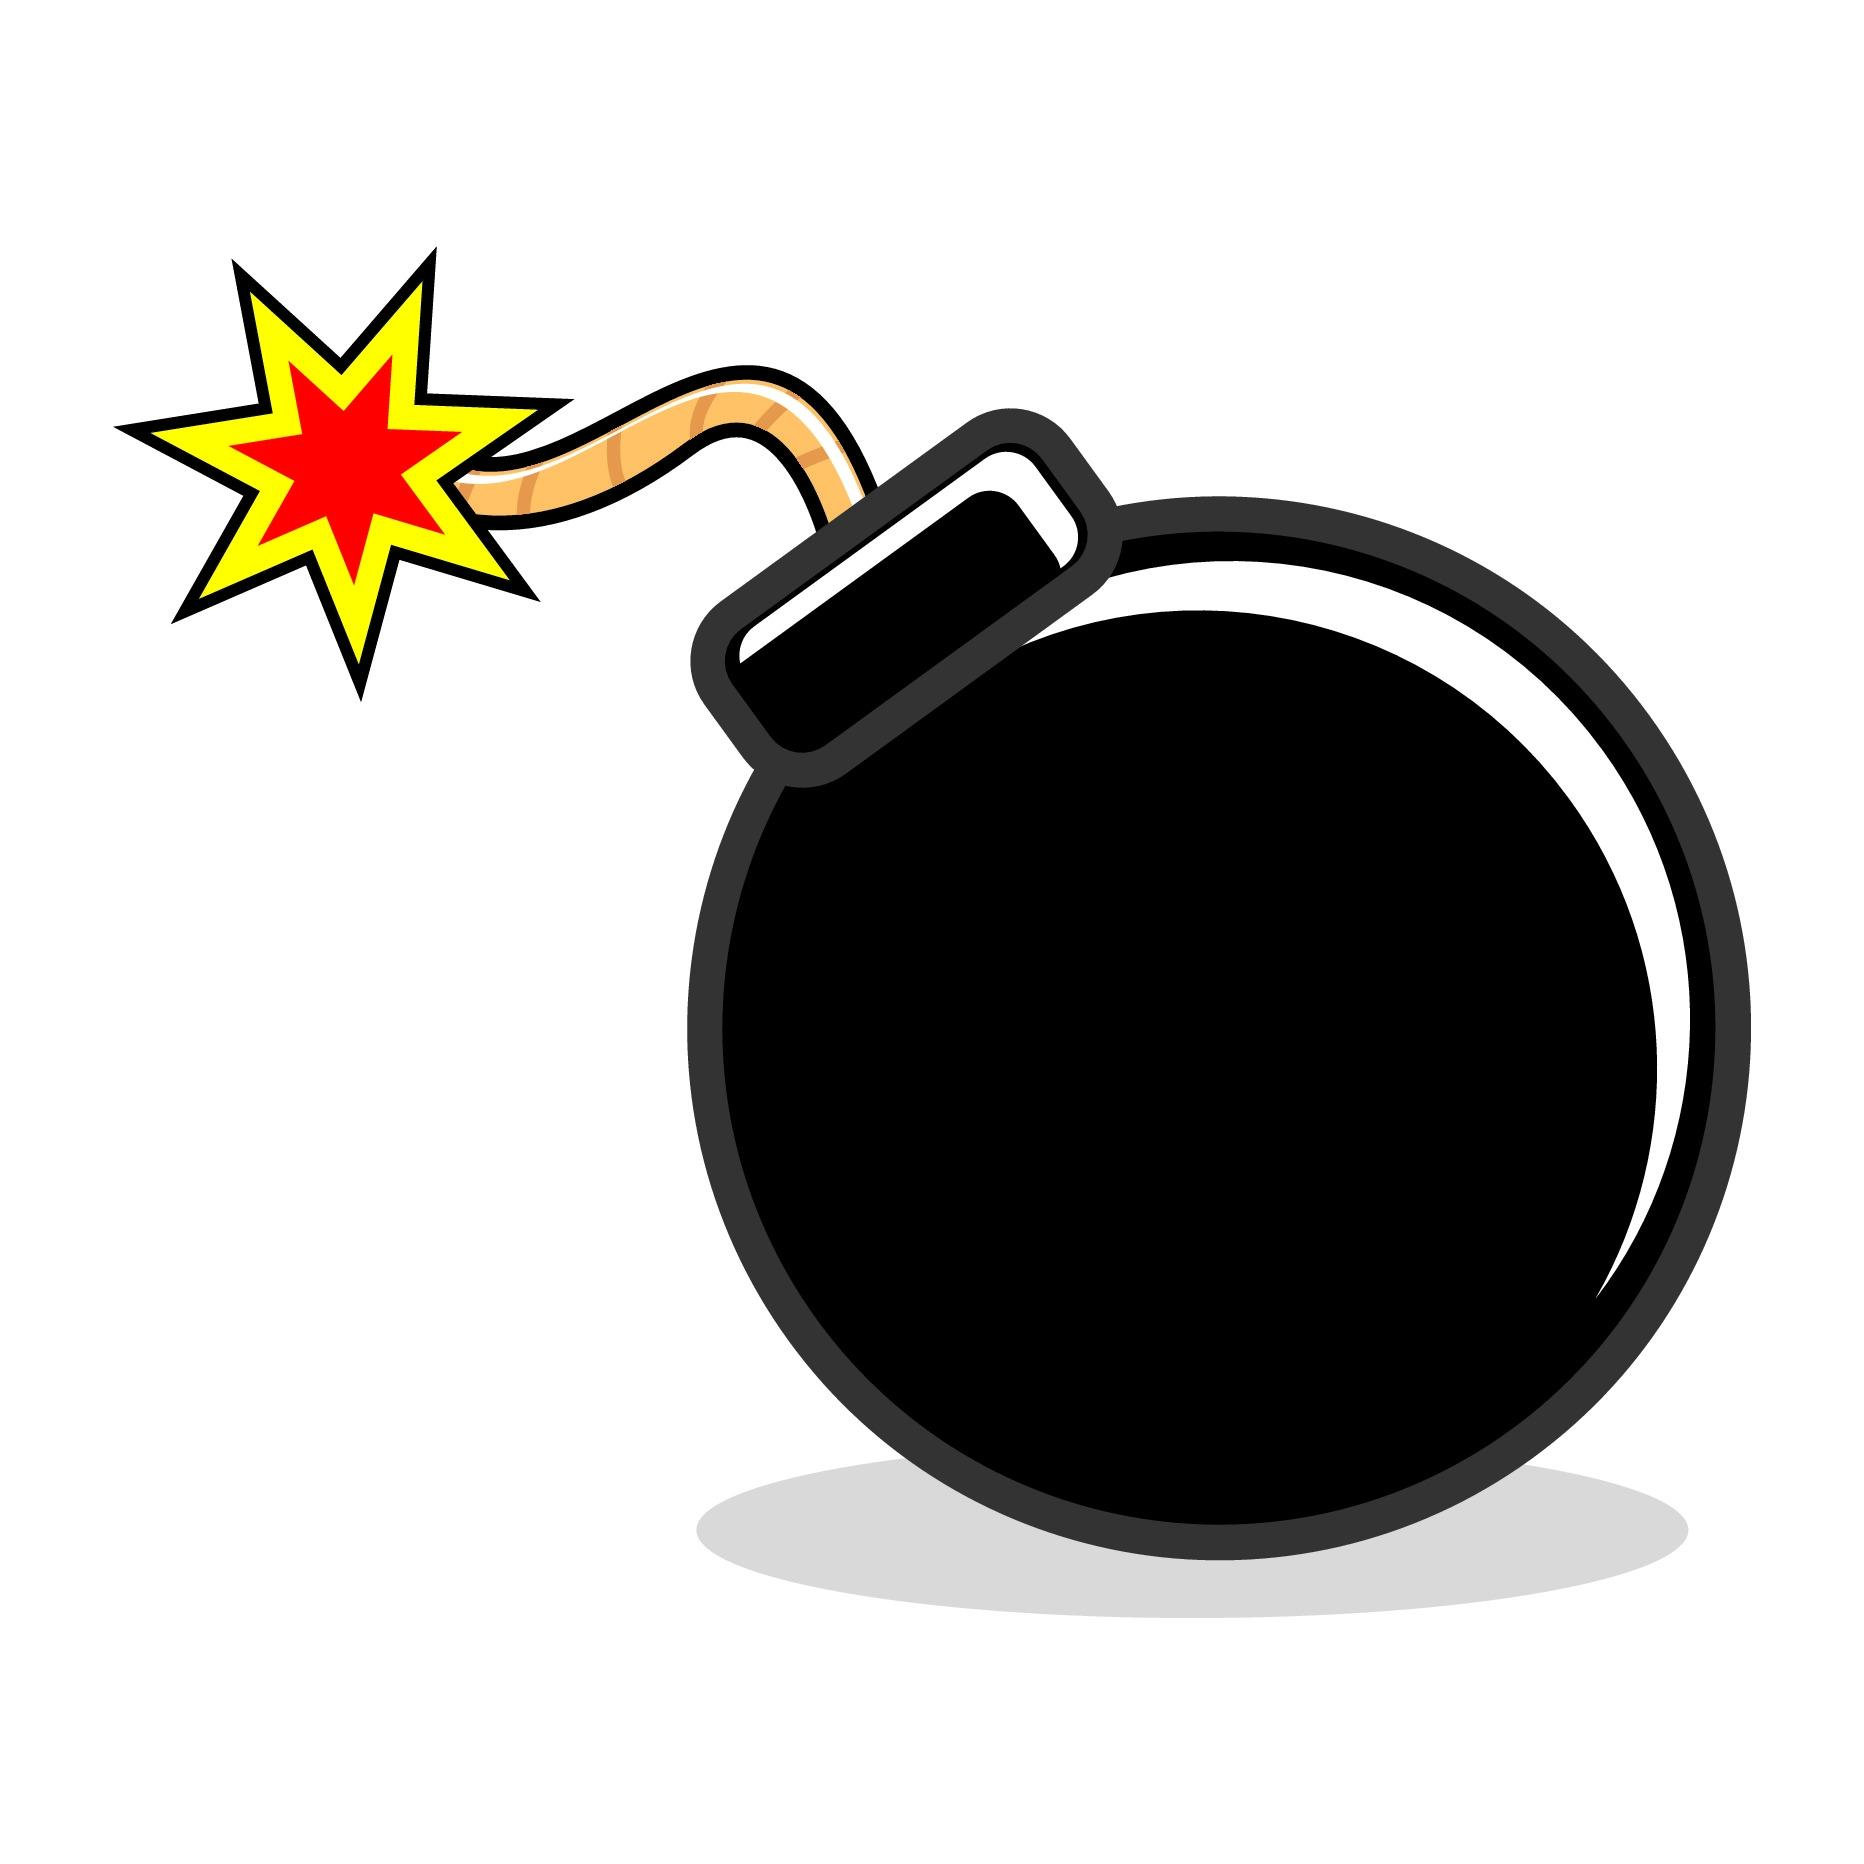 Bomb clipart clip art. Free download best on